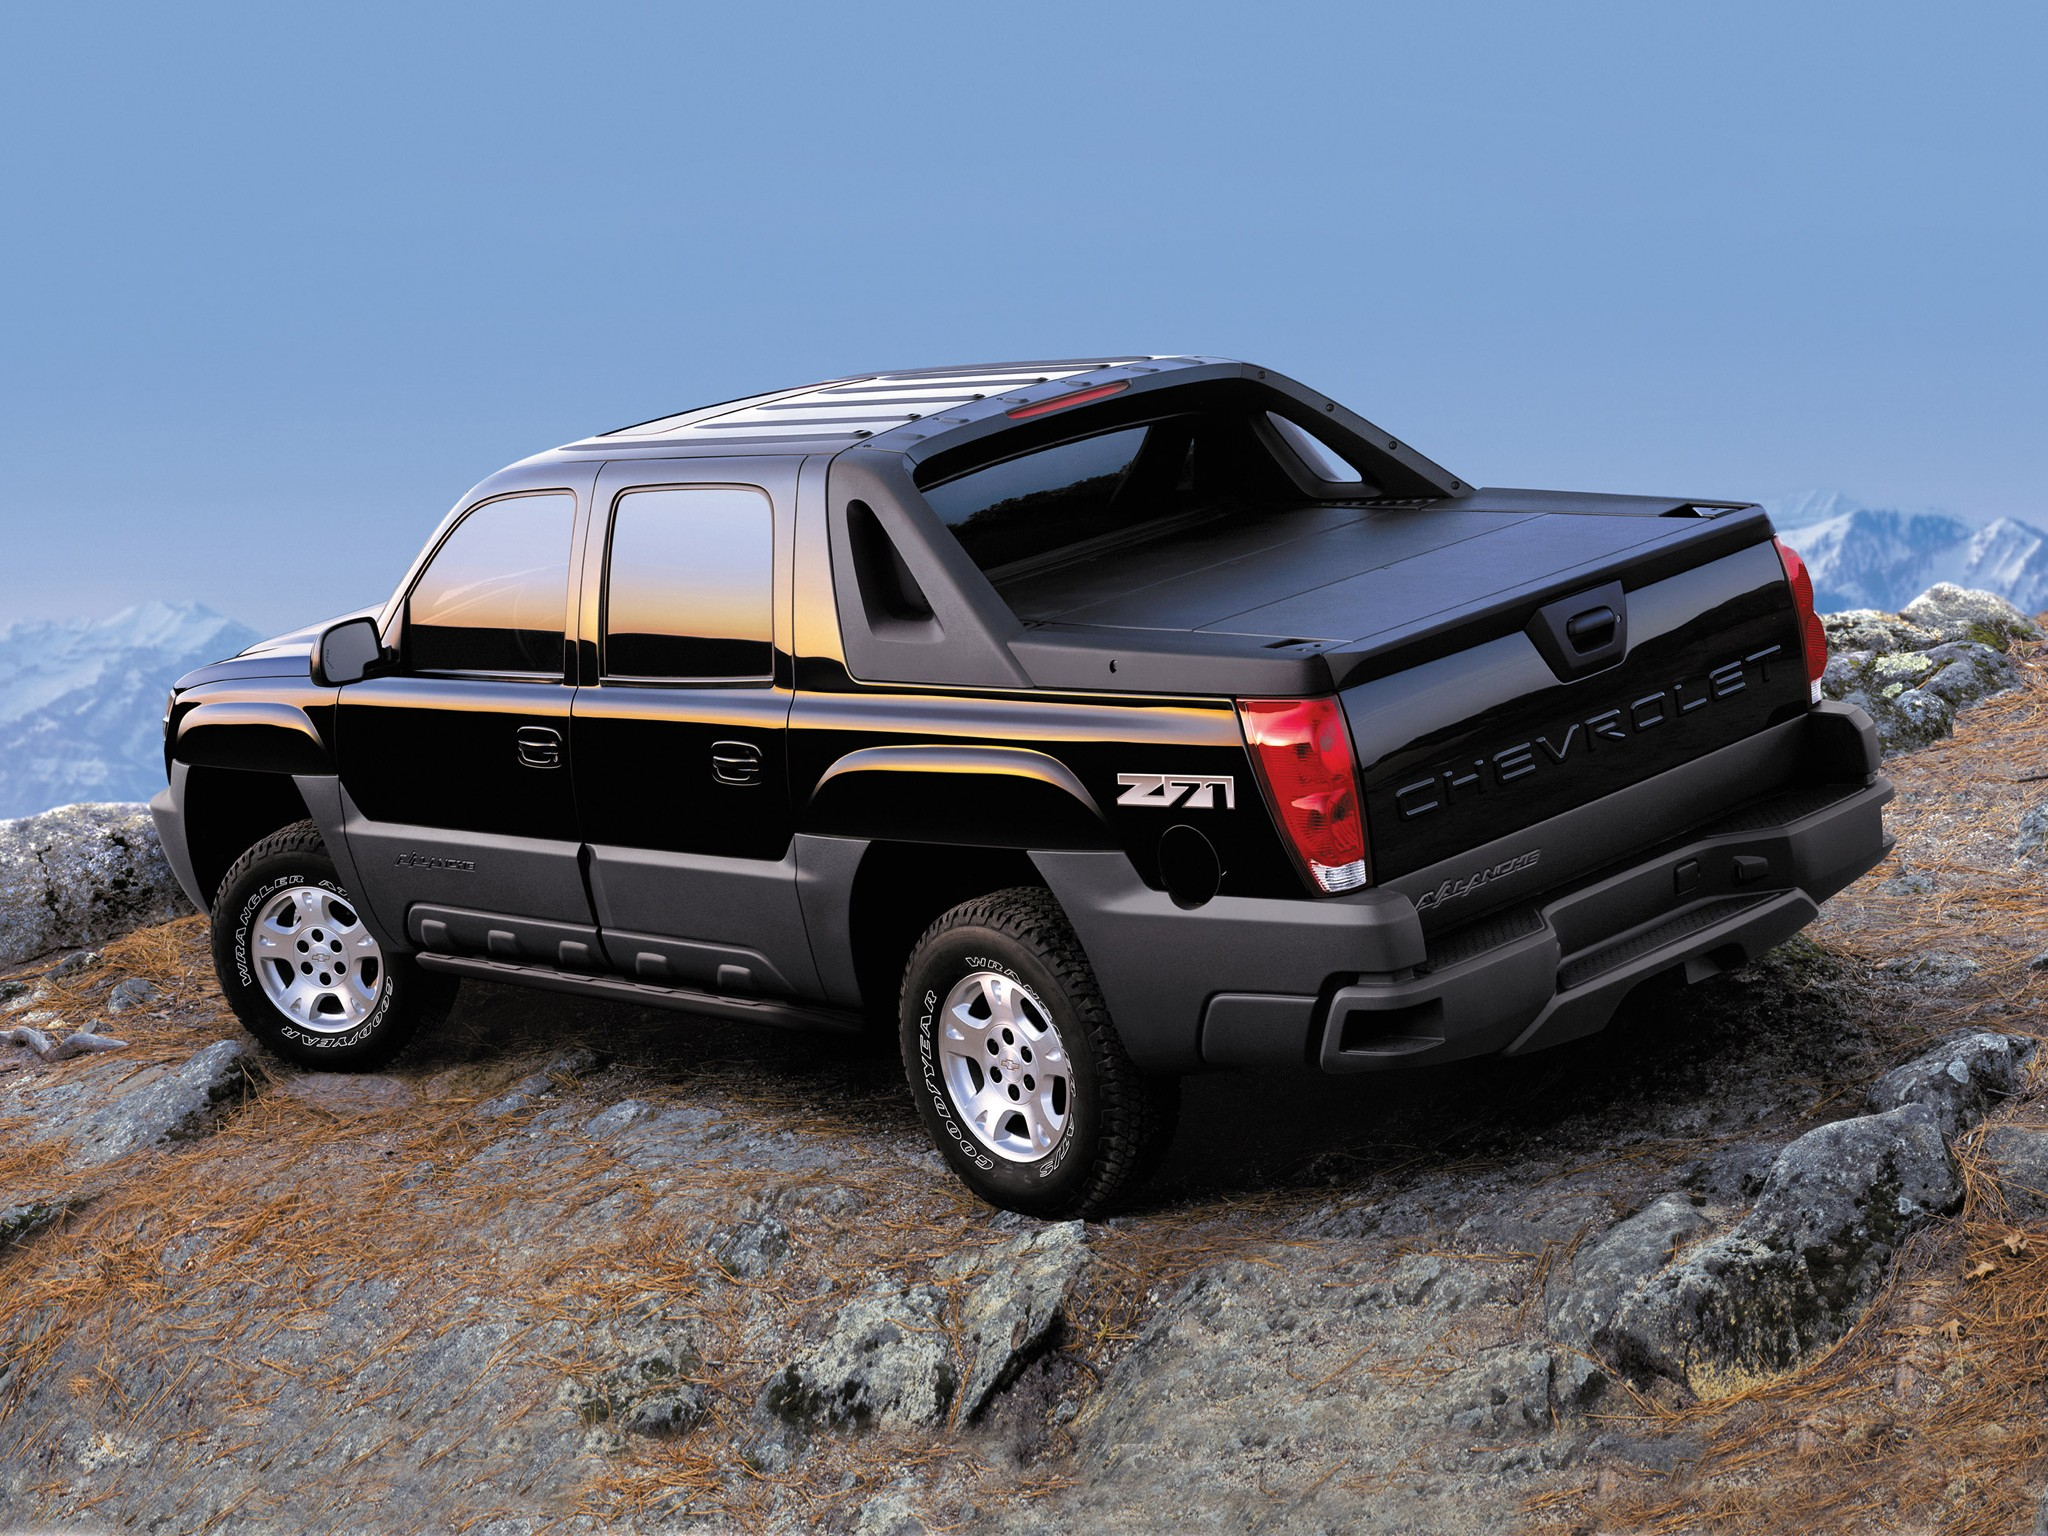 Chevrolet Avalanche I 2001 - 2006 Pickup #6